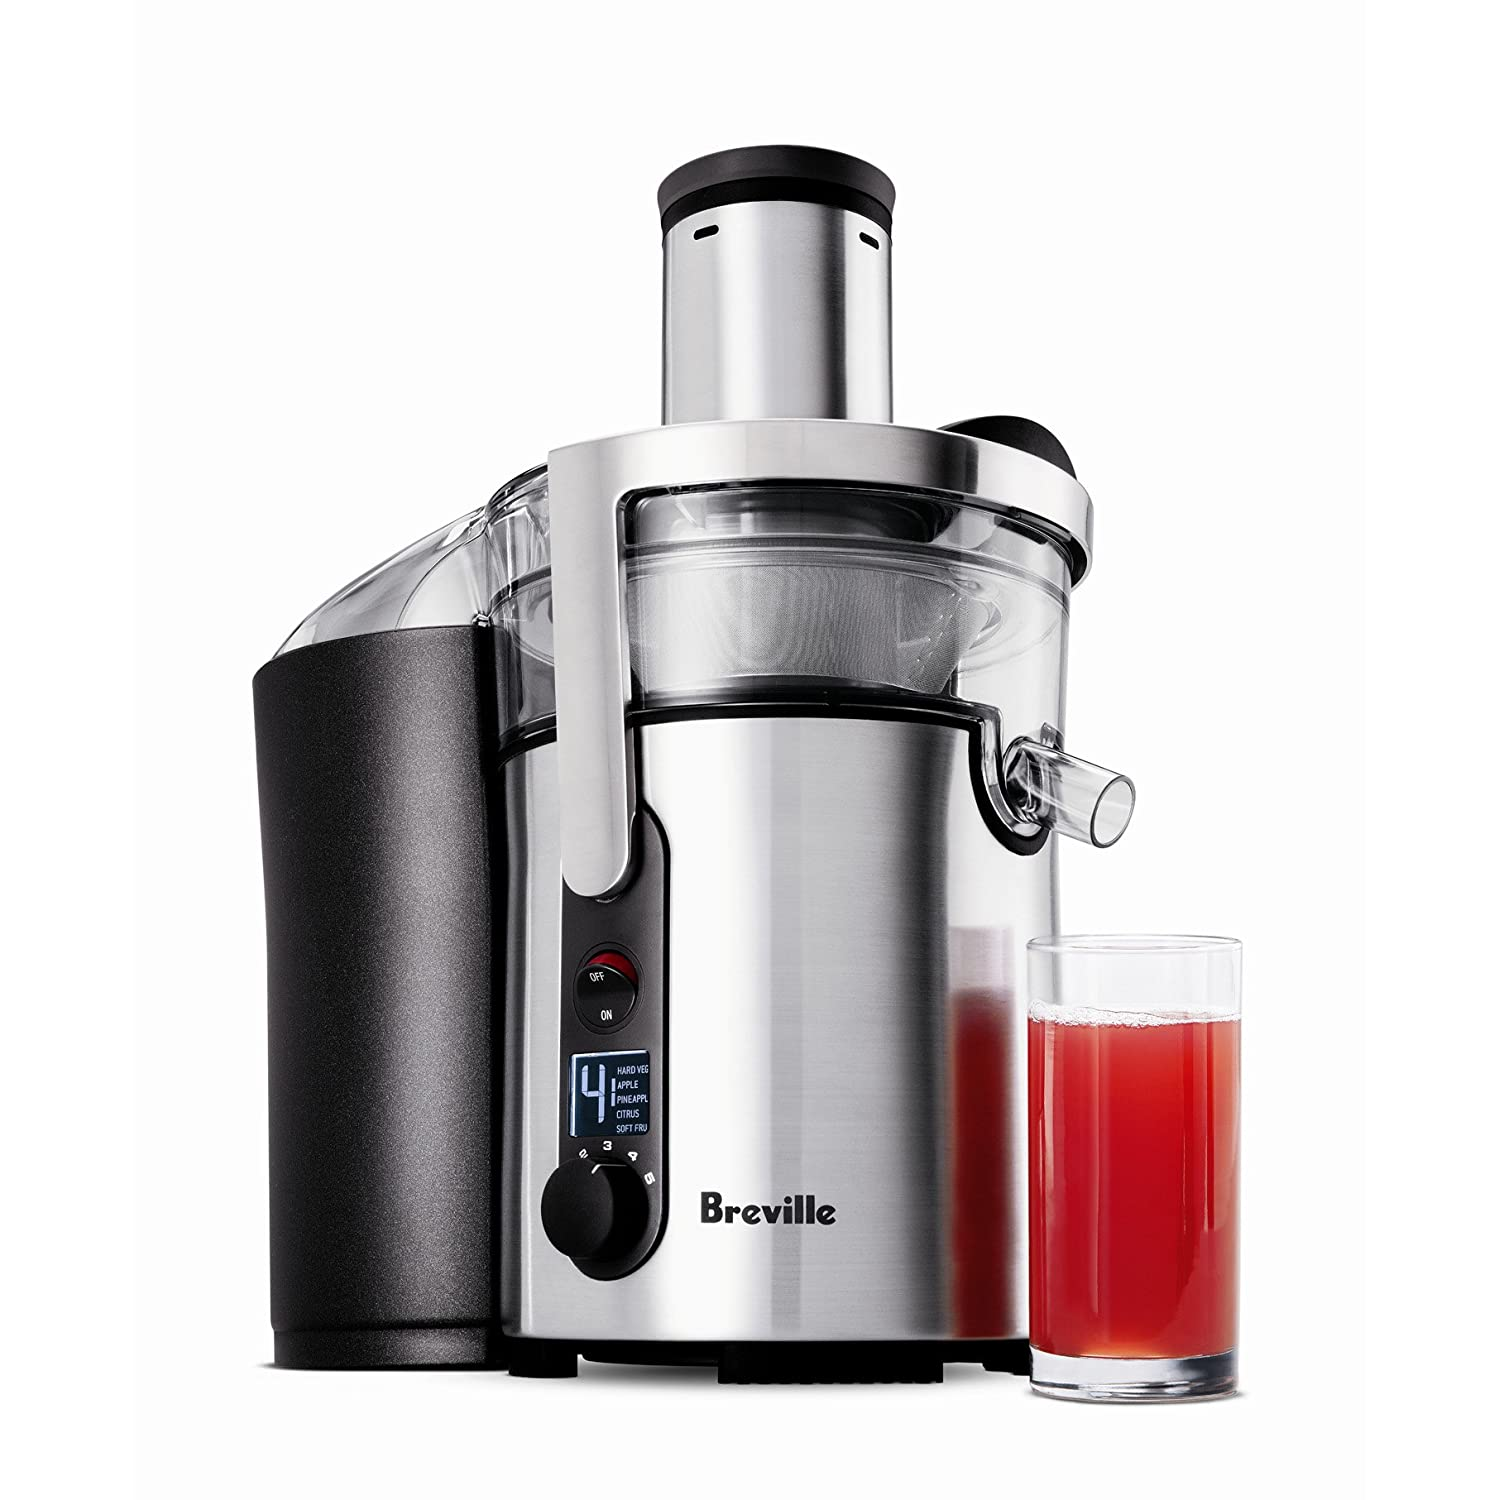 Review Of The Breville Bje510xl Juice Extractor